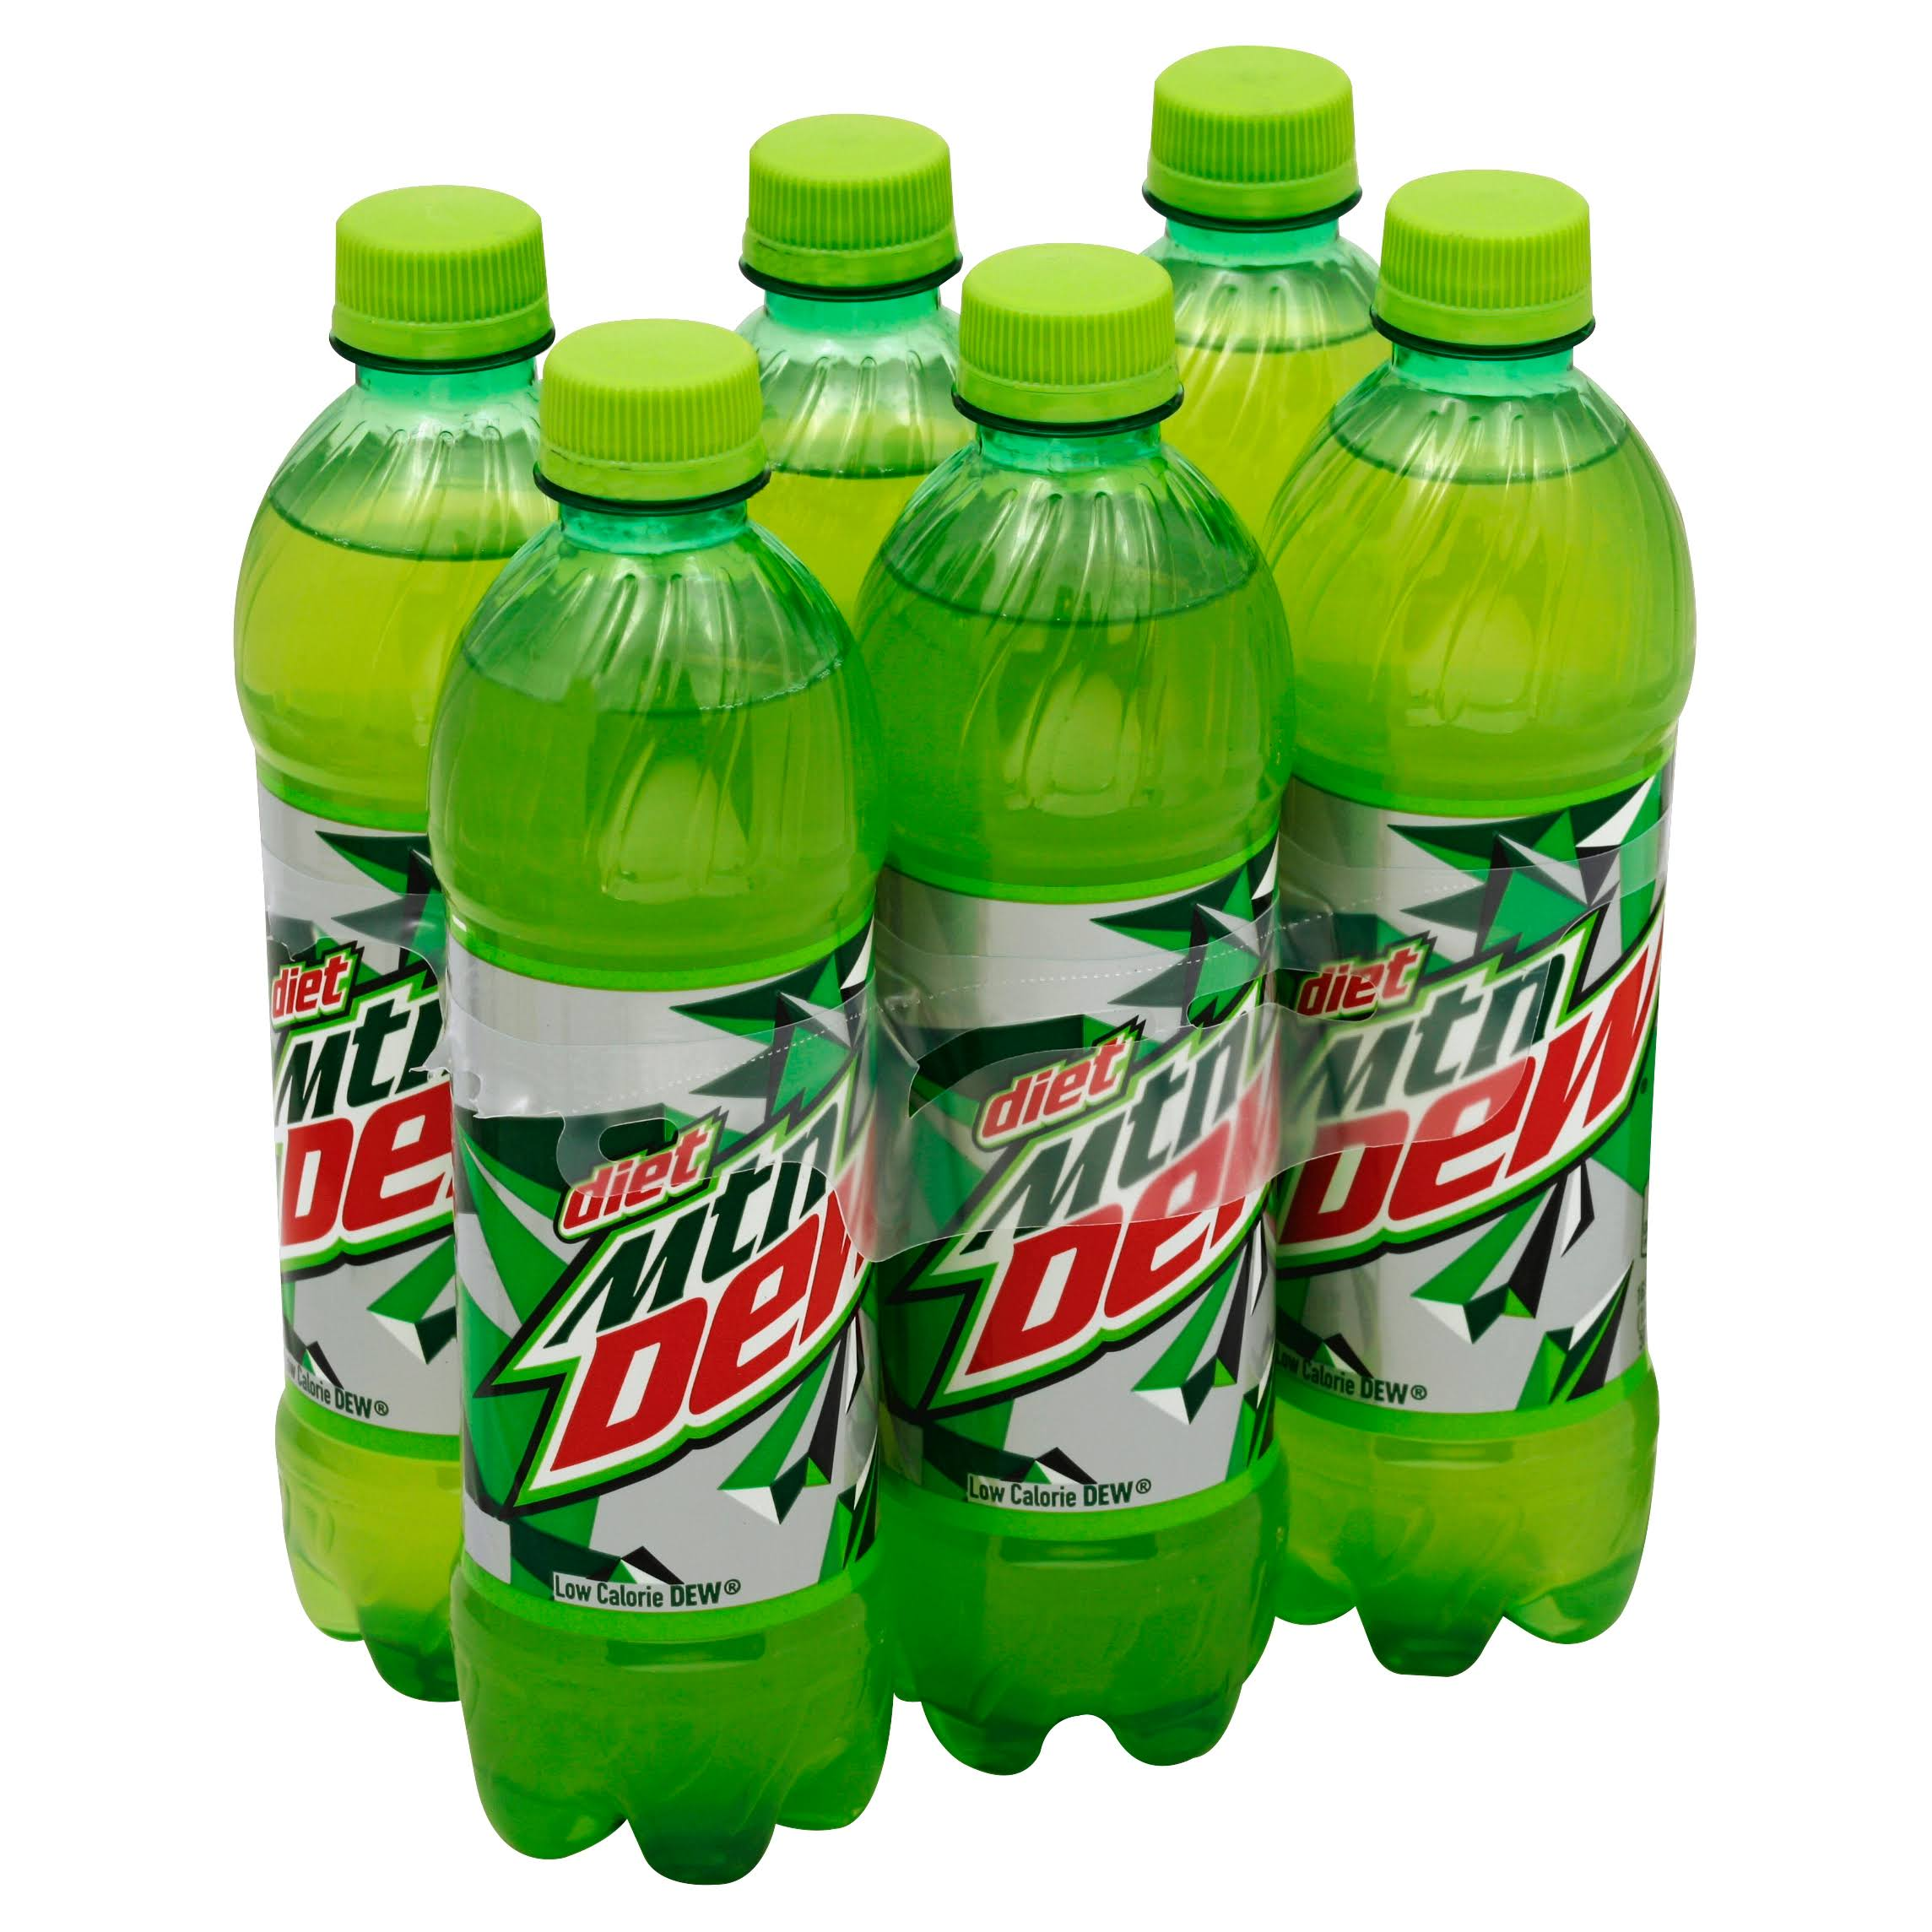 Mountain Dew Diet Soda - 16.9oz, 6pcs